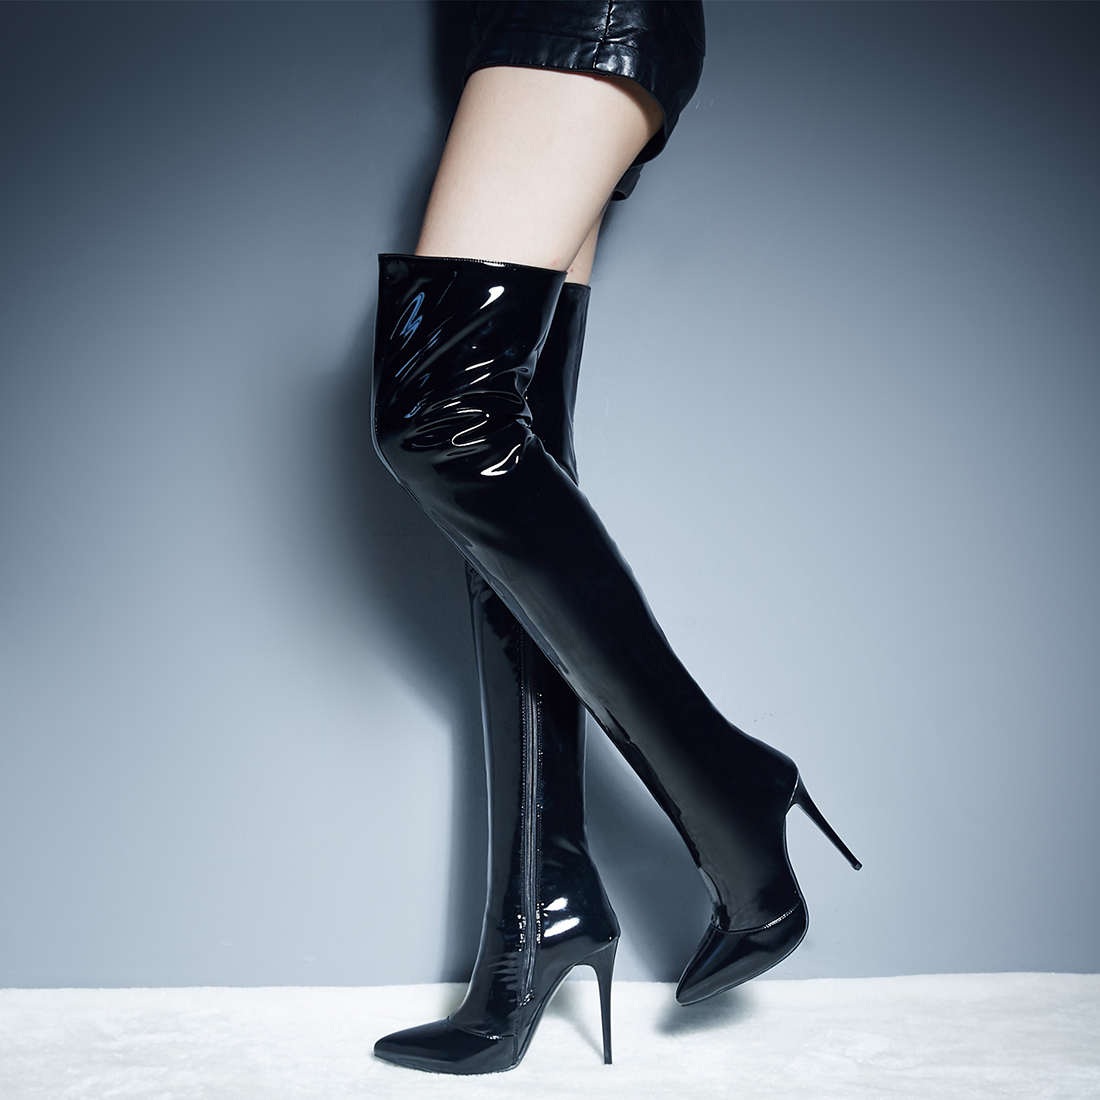 Compare Prices on Shiny Thigh High Boots- Online Shopping